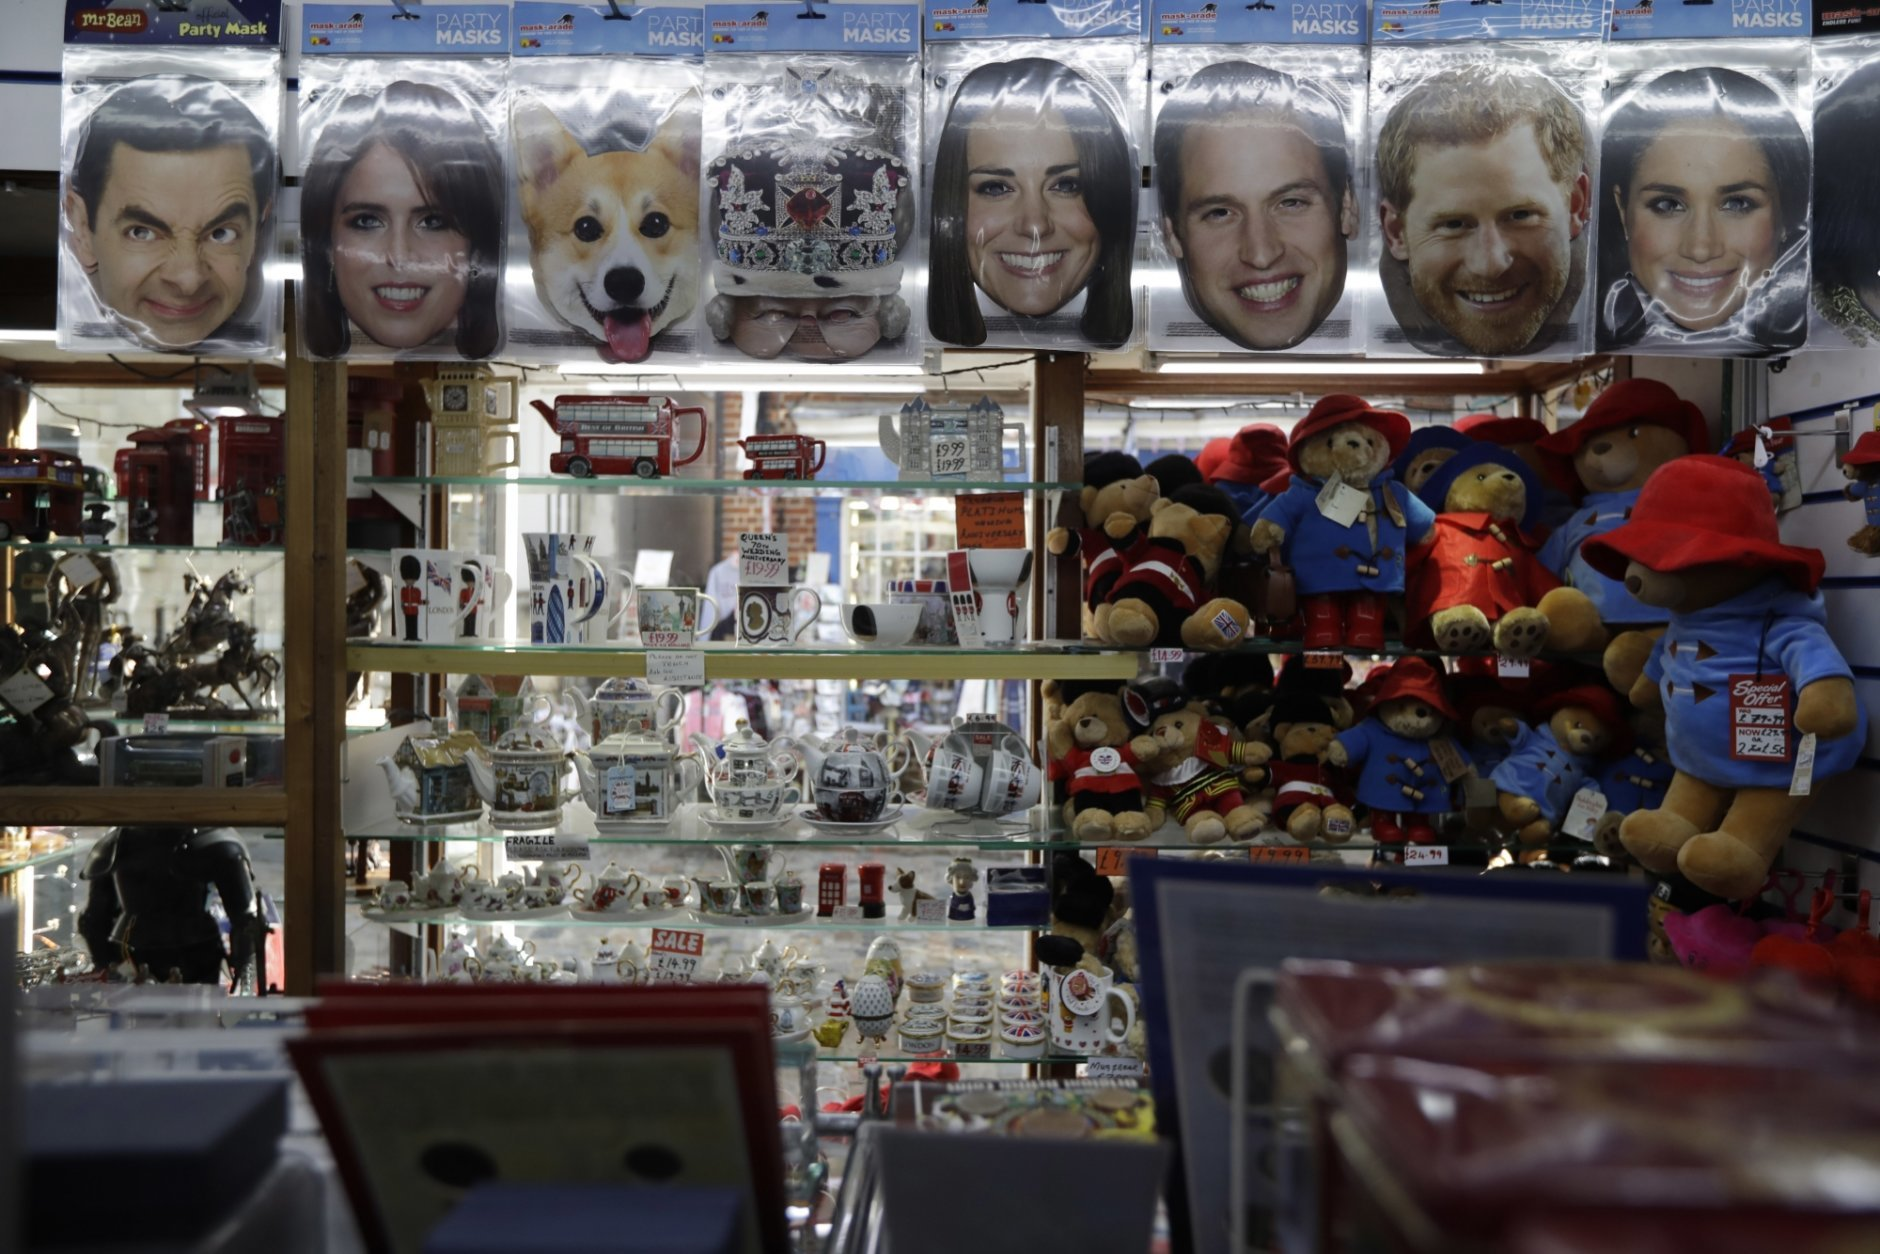 A Princess Eugenie mask, second left, is displayed for sale with other masks in a souvenir shop ahead of the wedding of Britain's Princess Eugenie in Windsor, England, Wednesday, Oct. 10, 2018. The 28-year-old granddaughter of Queen Elizabeth II is due to marry liquor company executive Jack Brooksbank on Friday in St. George's Chapel at Windsor Castle. (AP Photo/Matt Dunham)